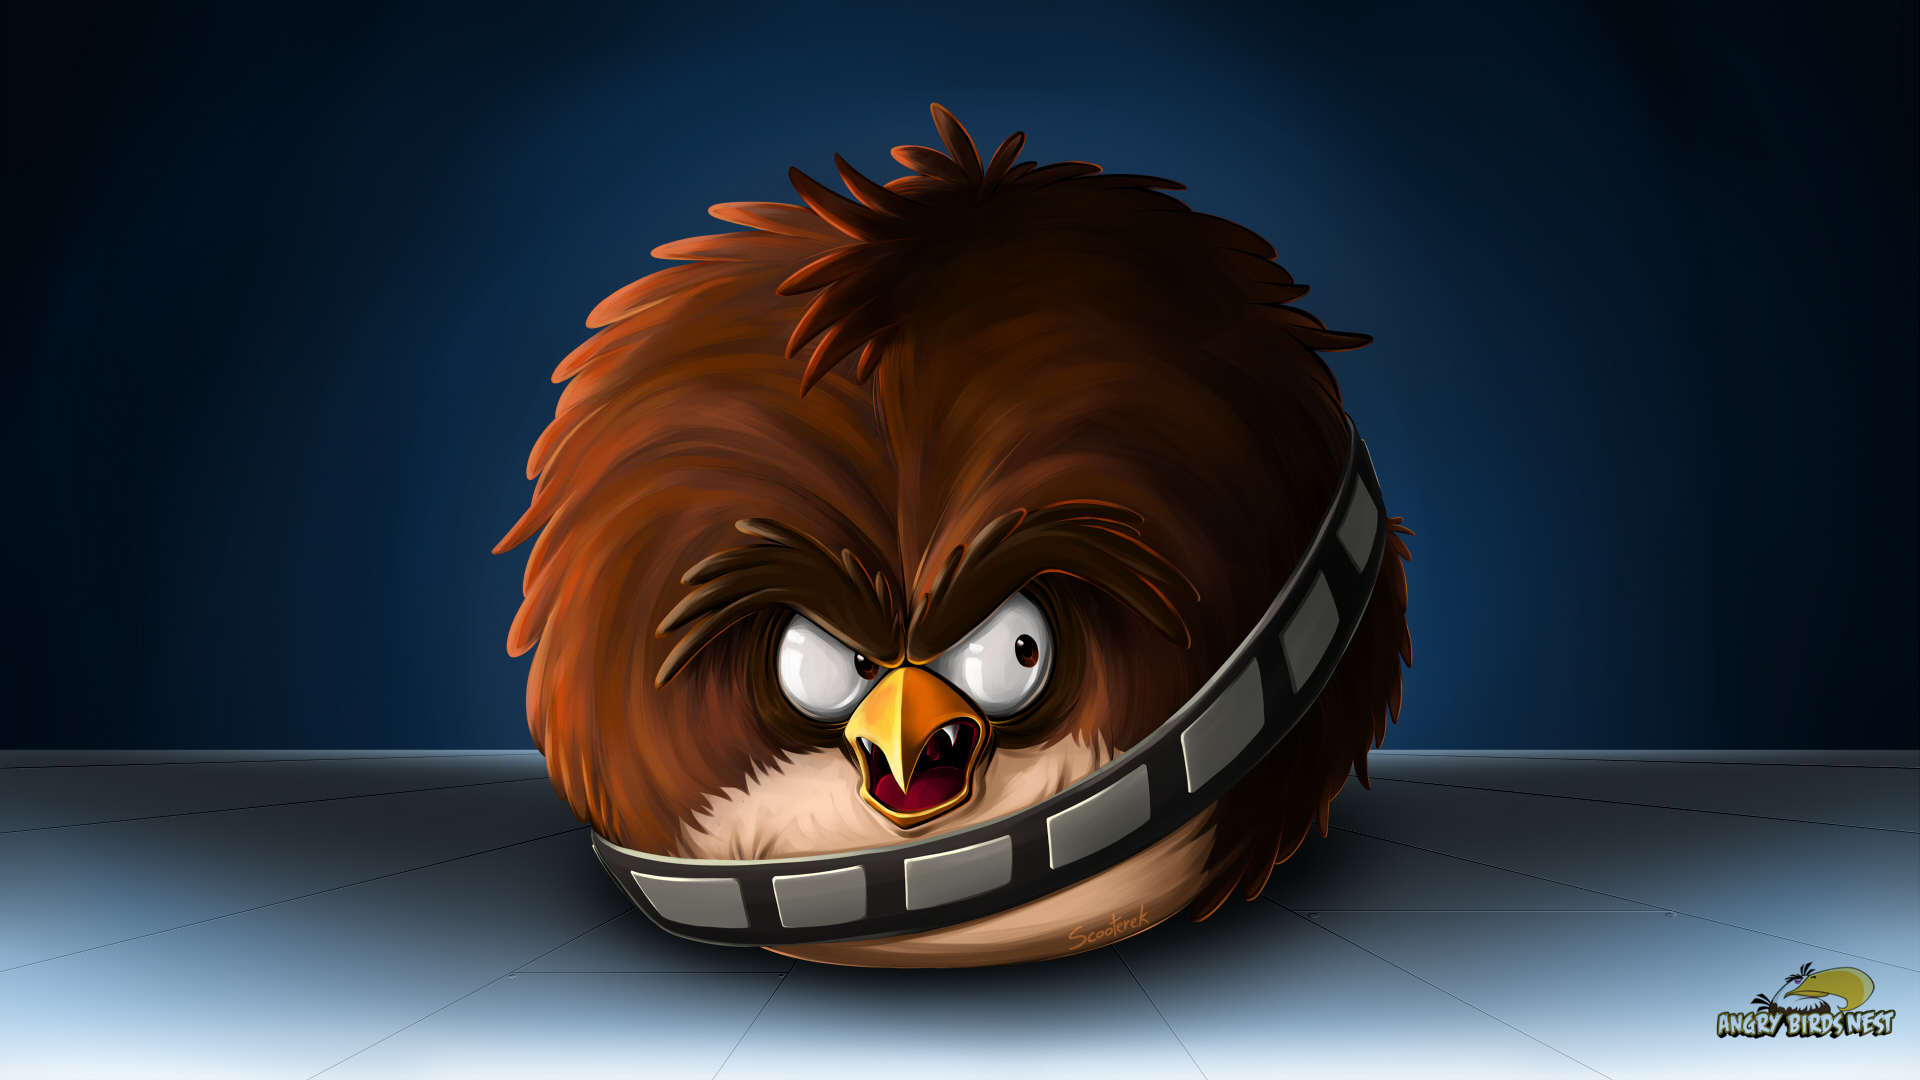 Angry Birds Star Wars HD Wallpaper | Wallpup.com